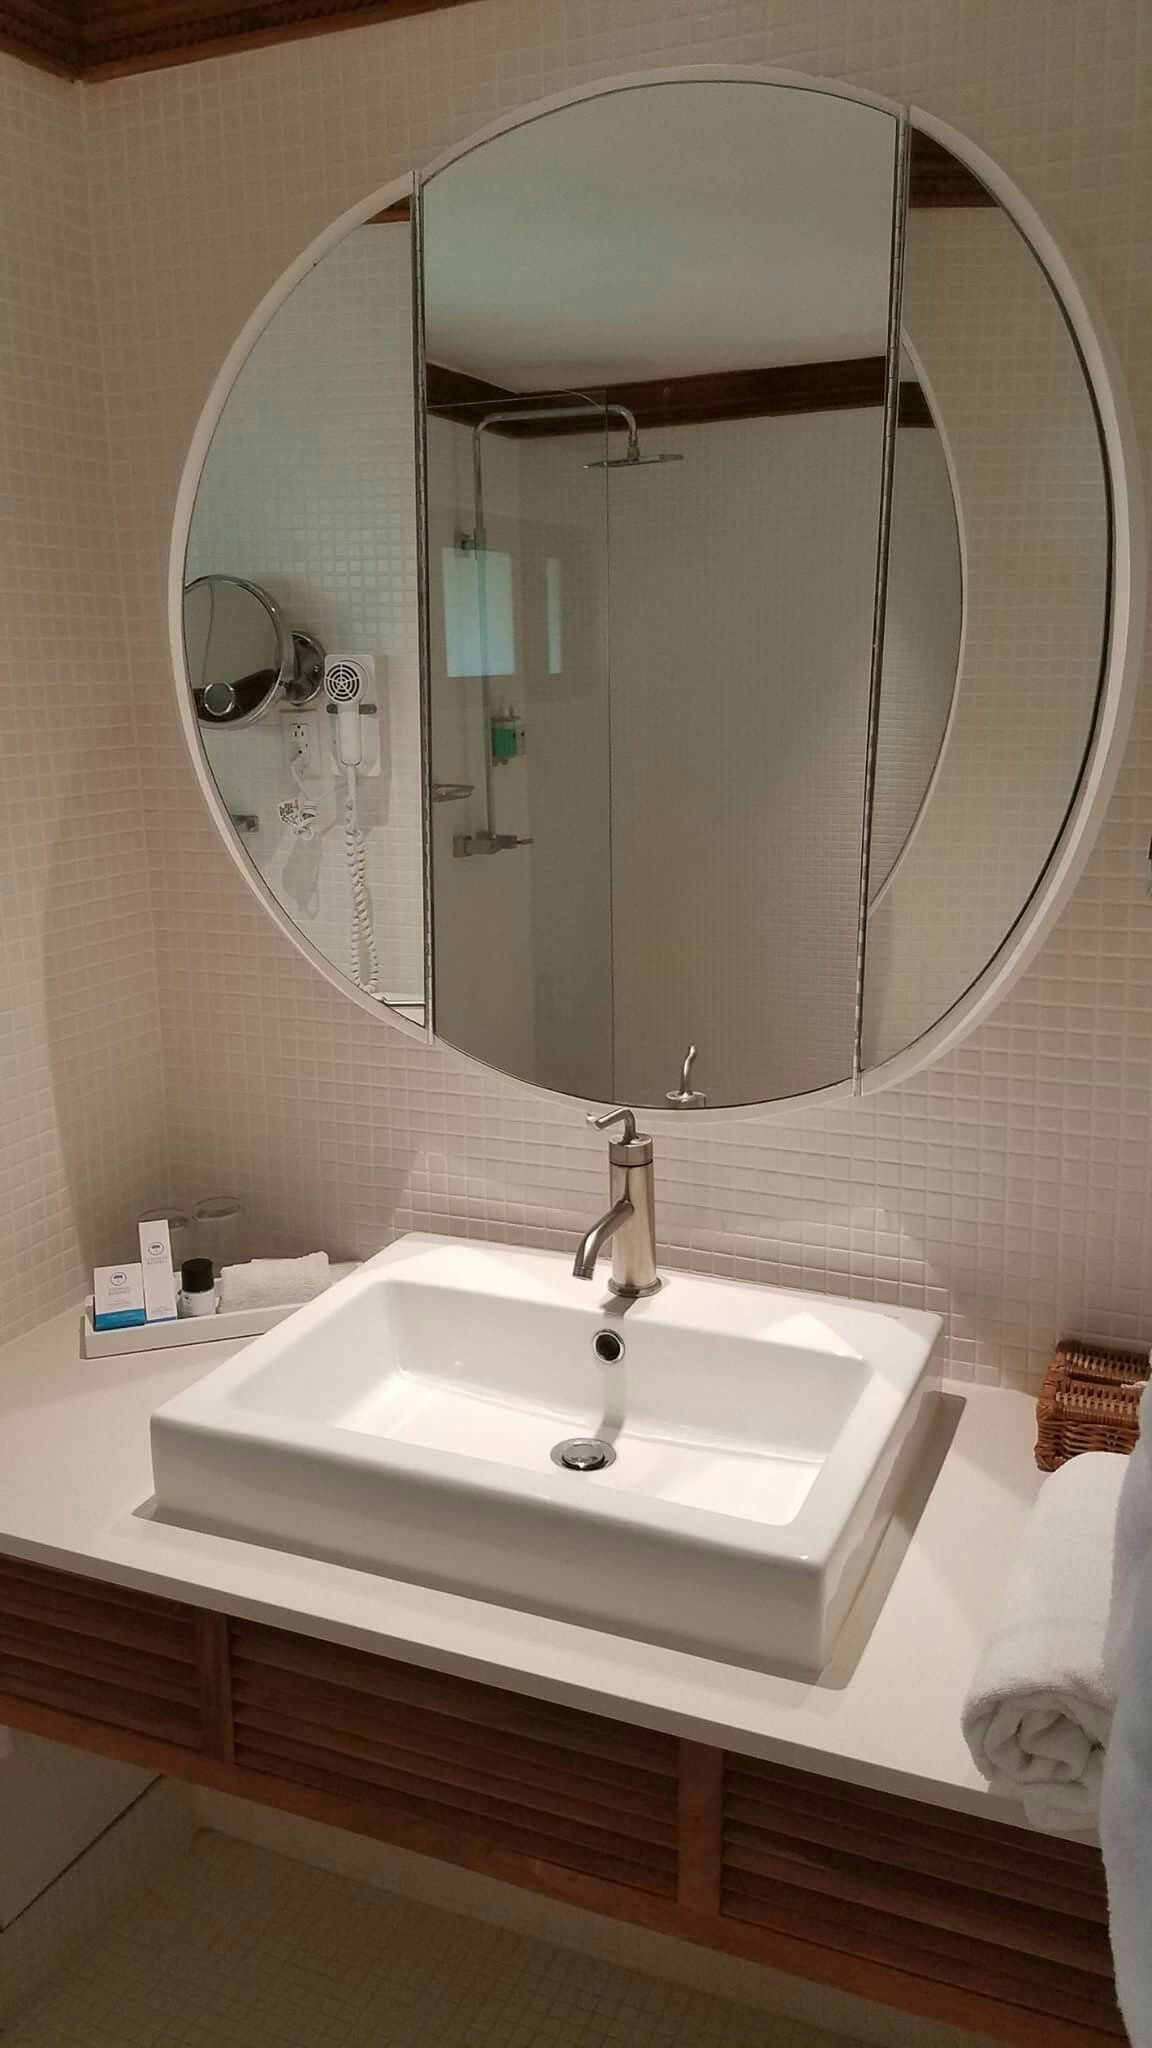 Pin By Destinations 24 7 Travel Servi On Couples Swept Away Resort Negril Jamaica With Images Round Mirror Bathroom Bathroom Mirror Lighted Bathroom Mirror